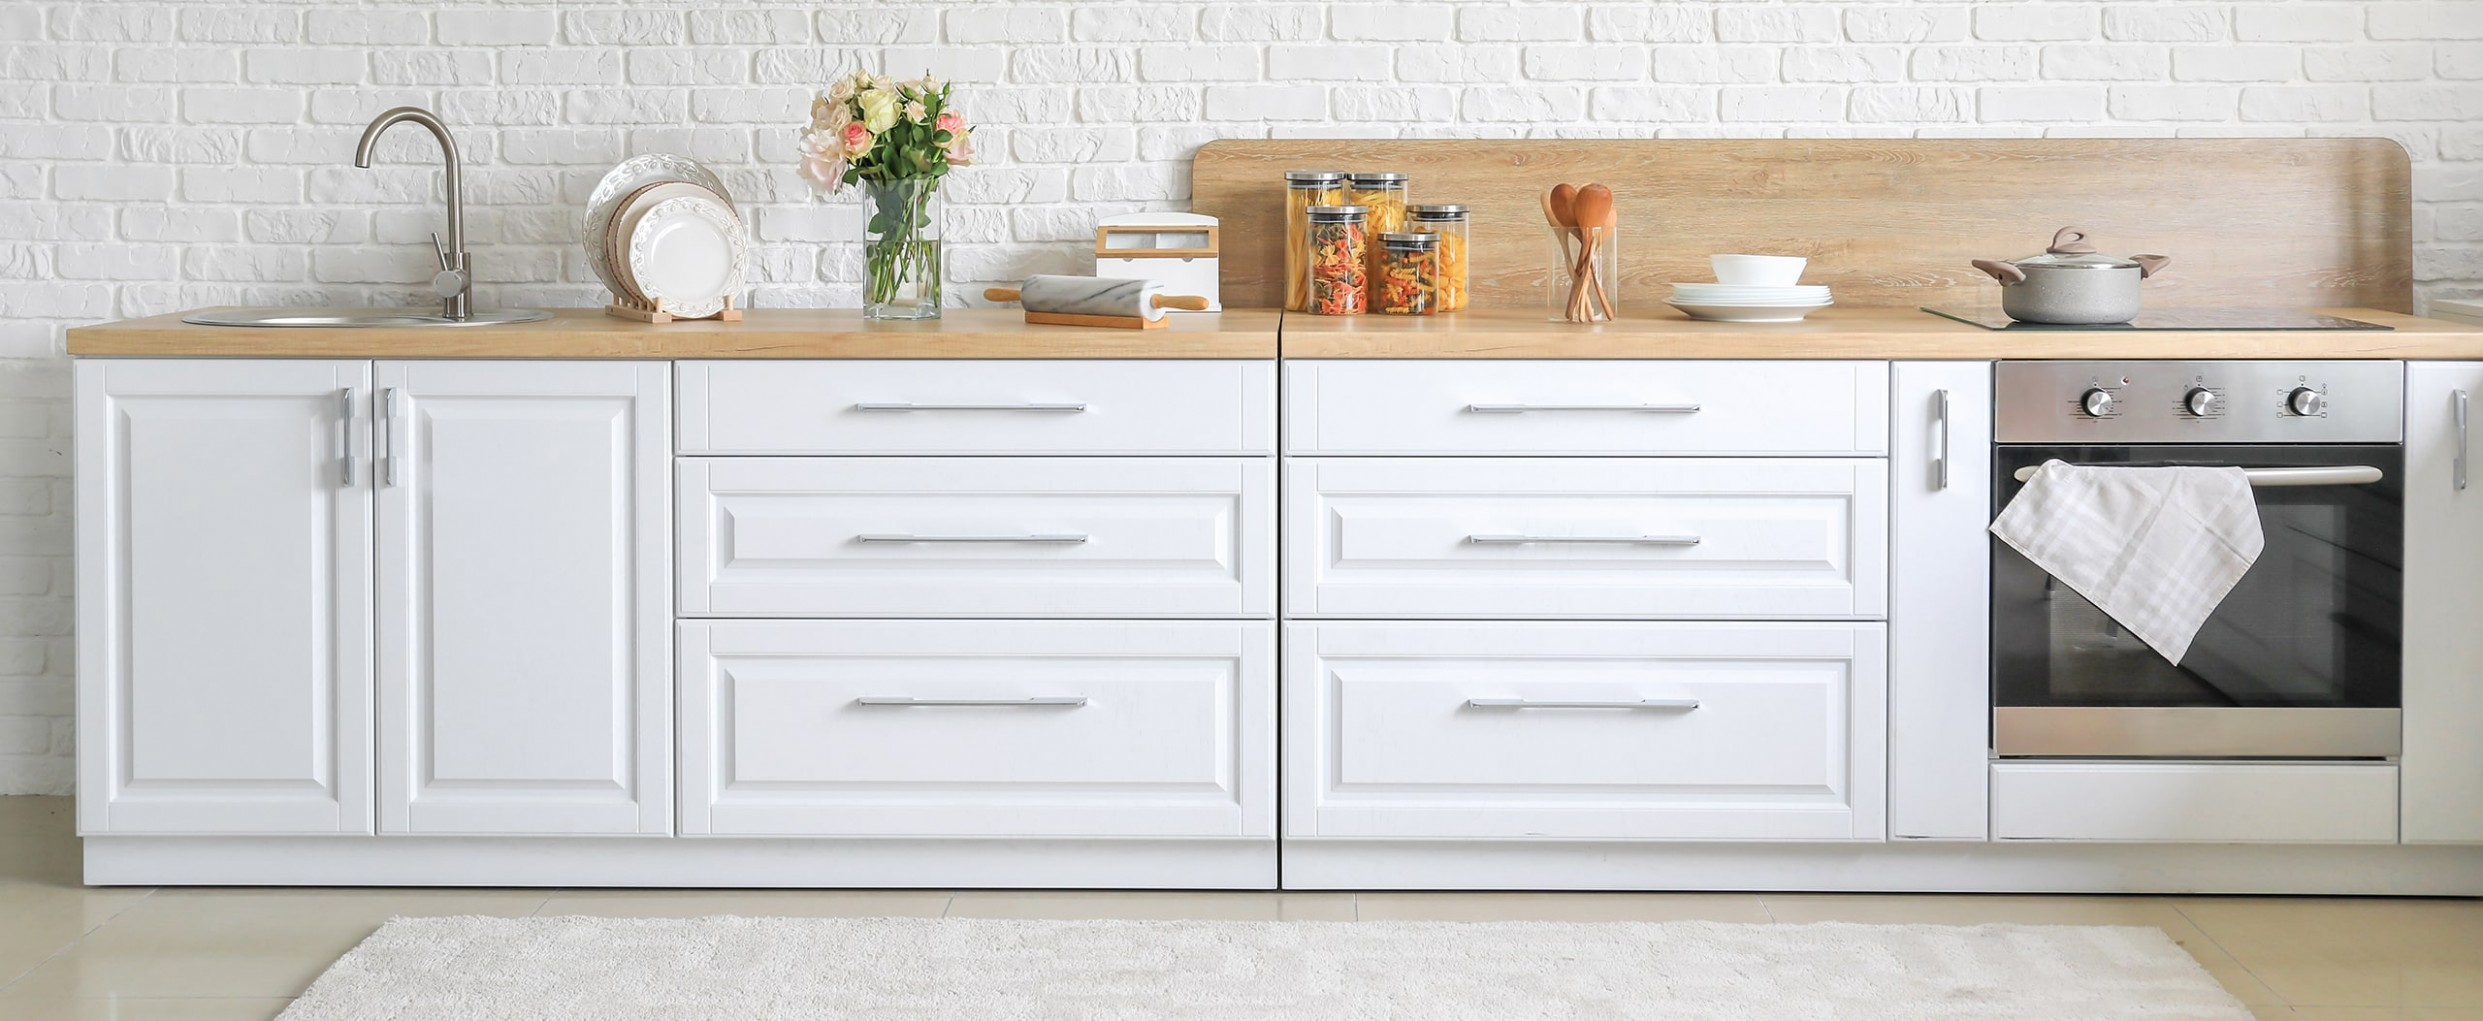 Cabinet Hardware Placement Guide - Long Cabinet Pulls Kitchen